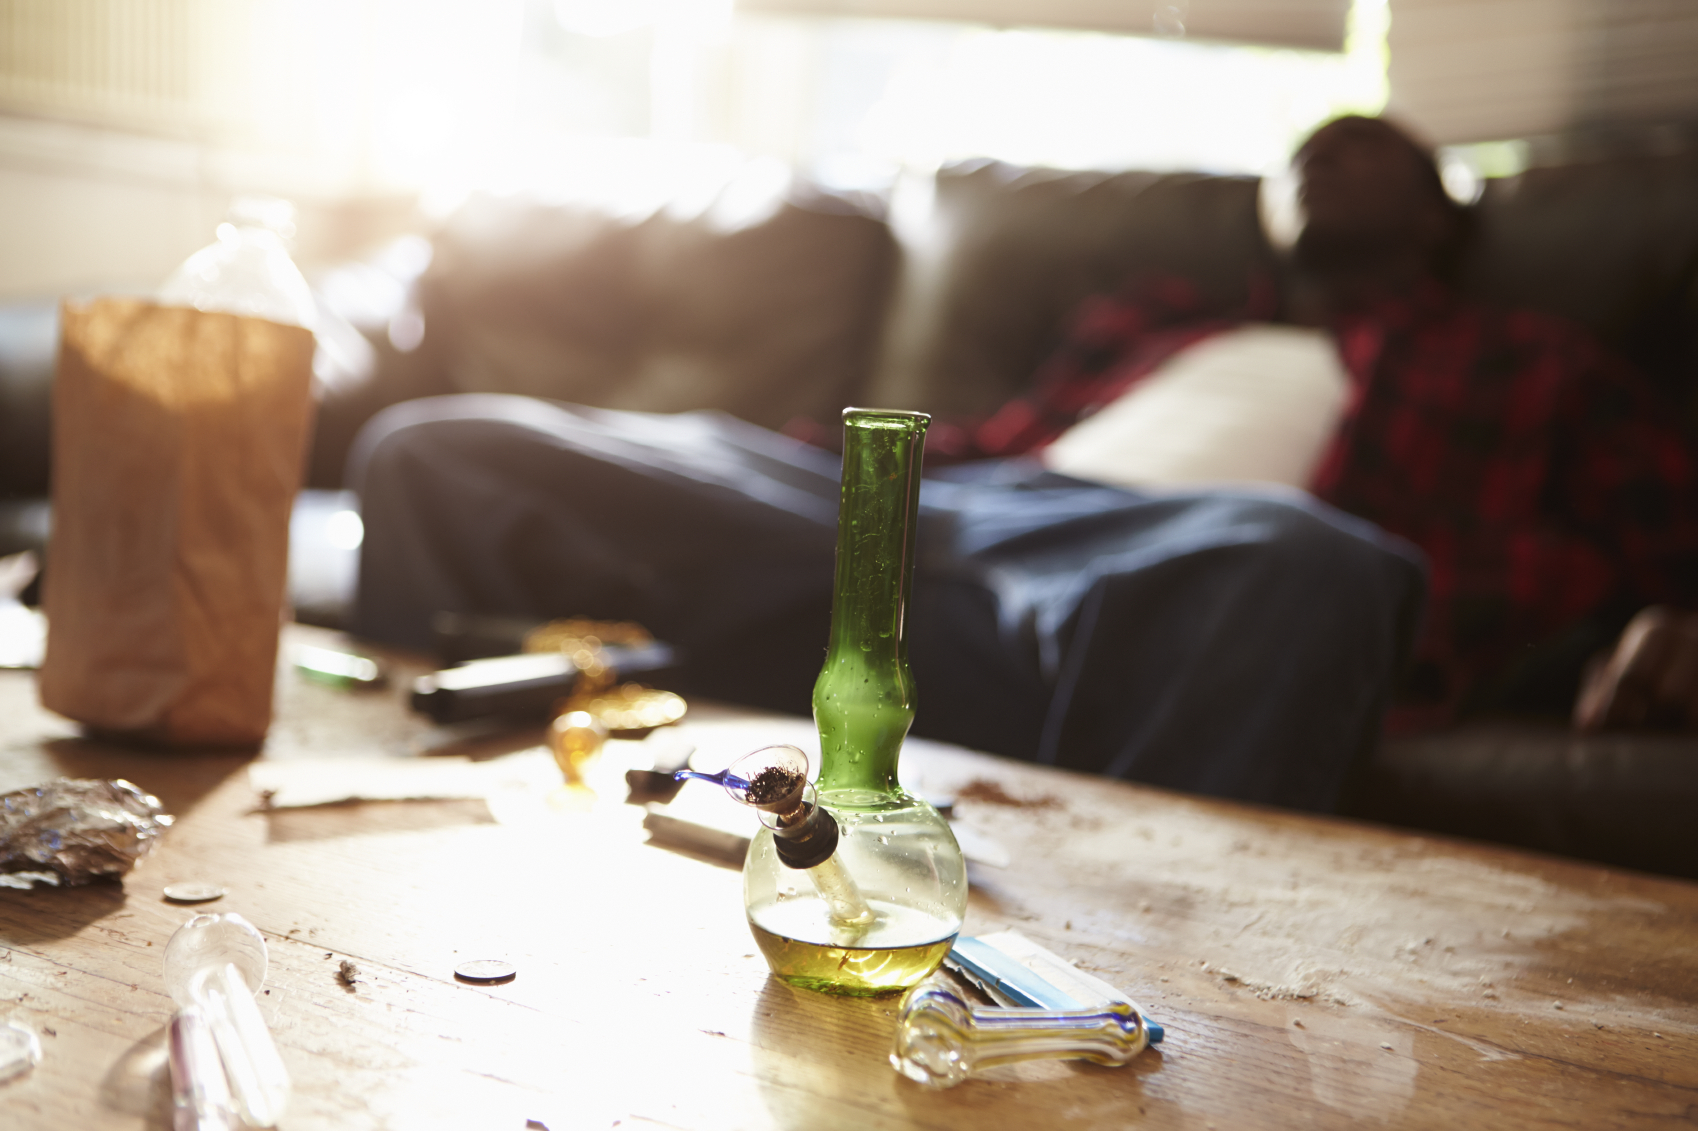 A Guide to Drug Paraphernalia for Parents